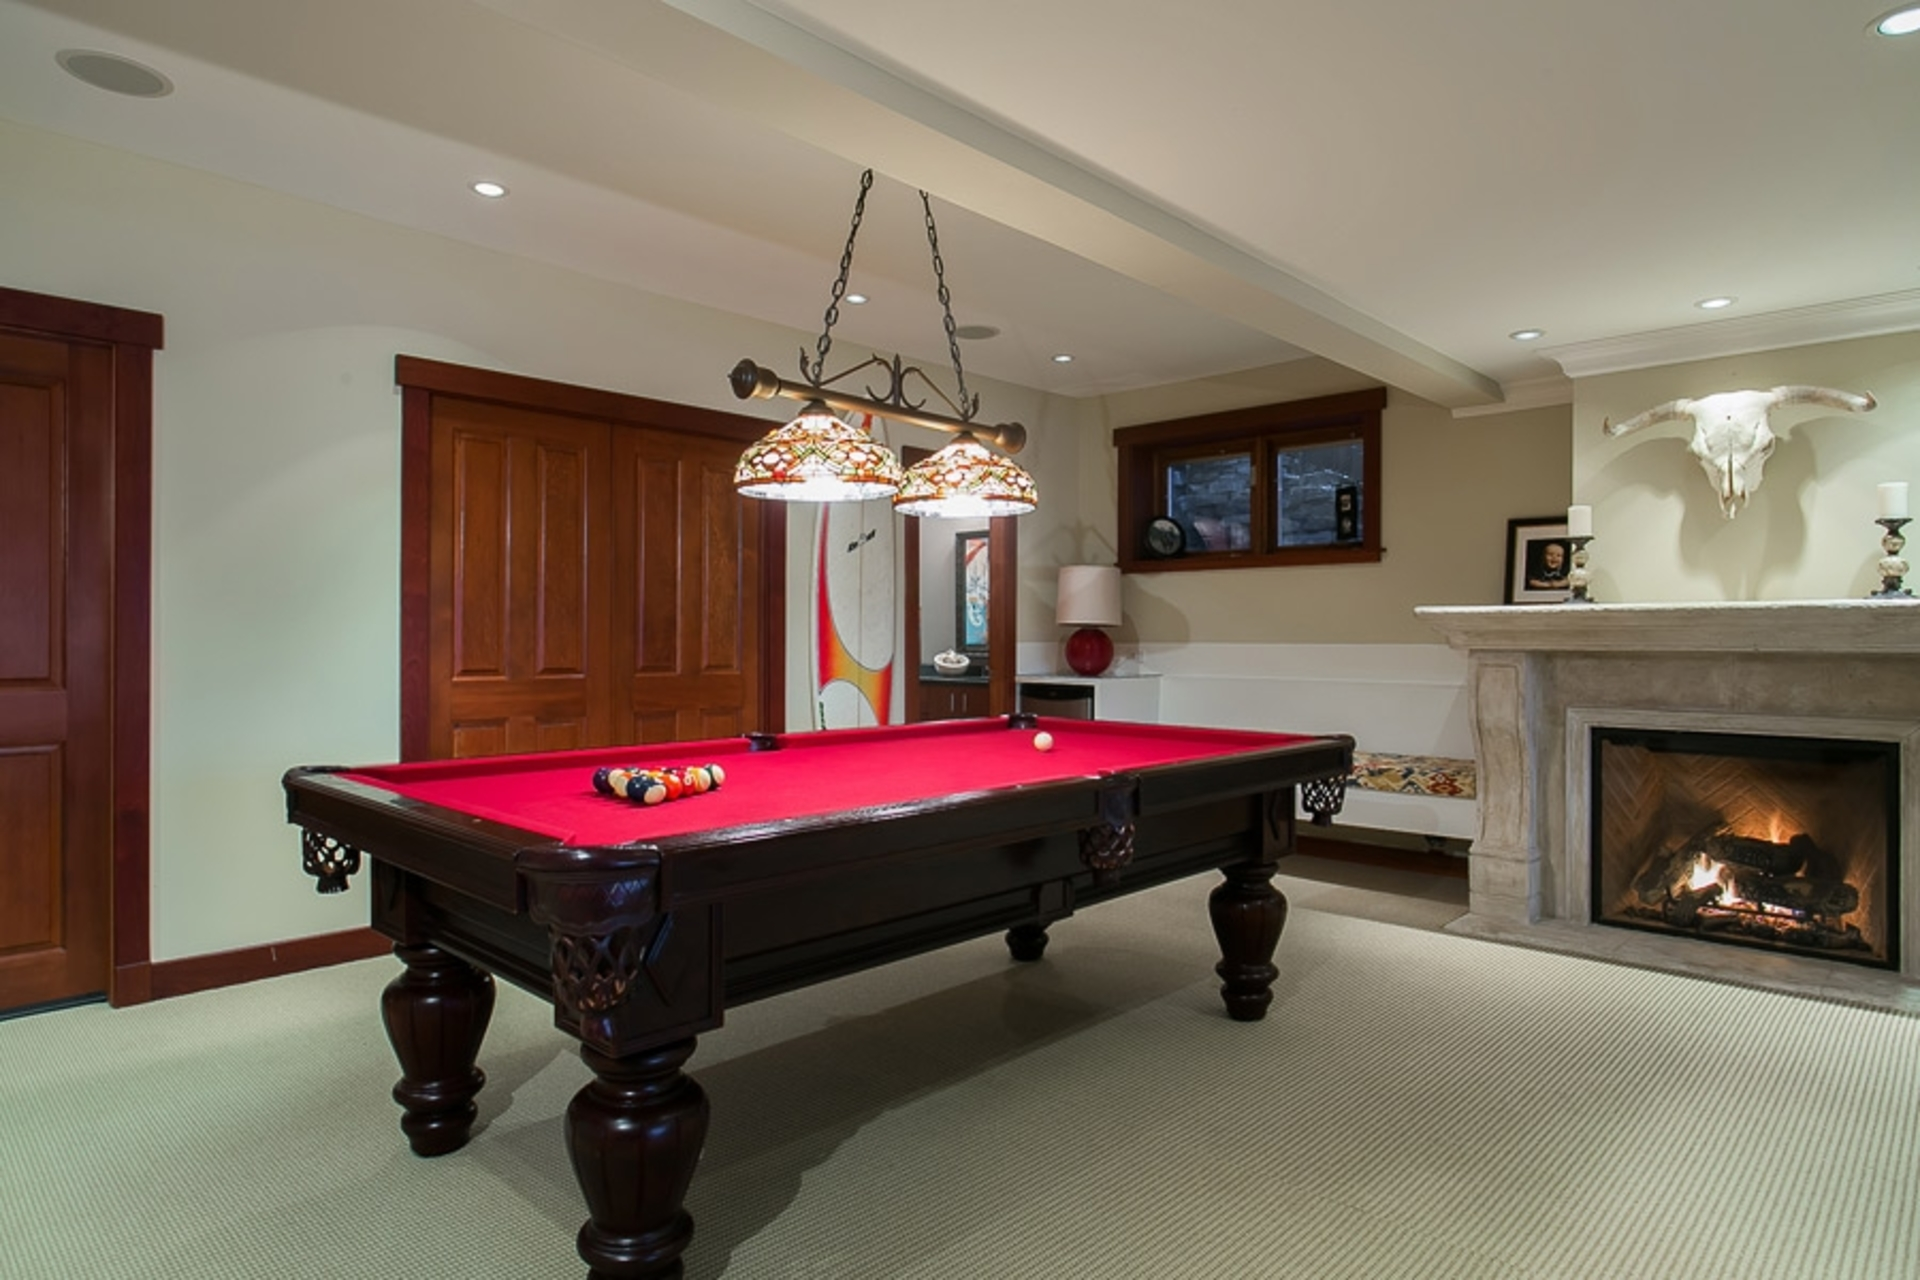 Entertainment Room at Address Upon Request, Deep Cove, North Vancouver